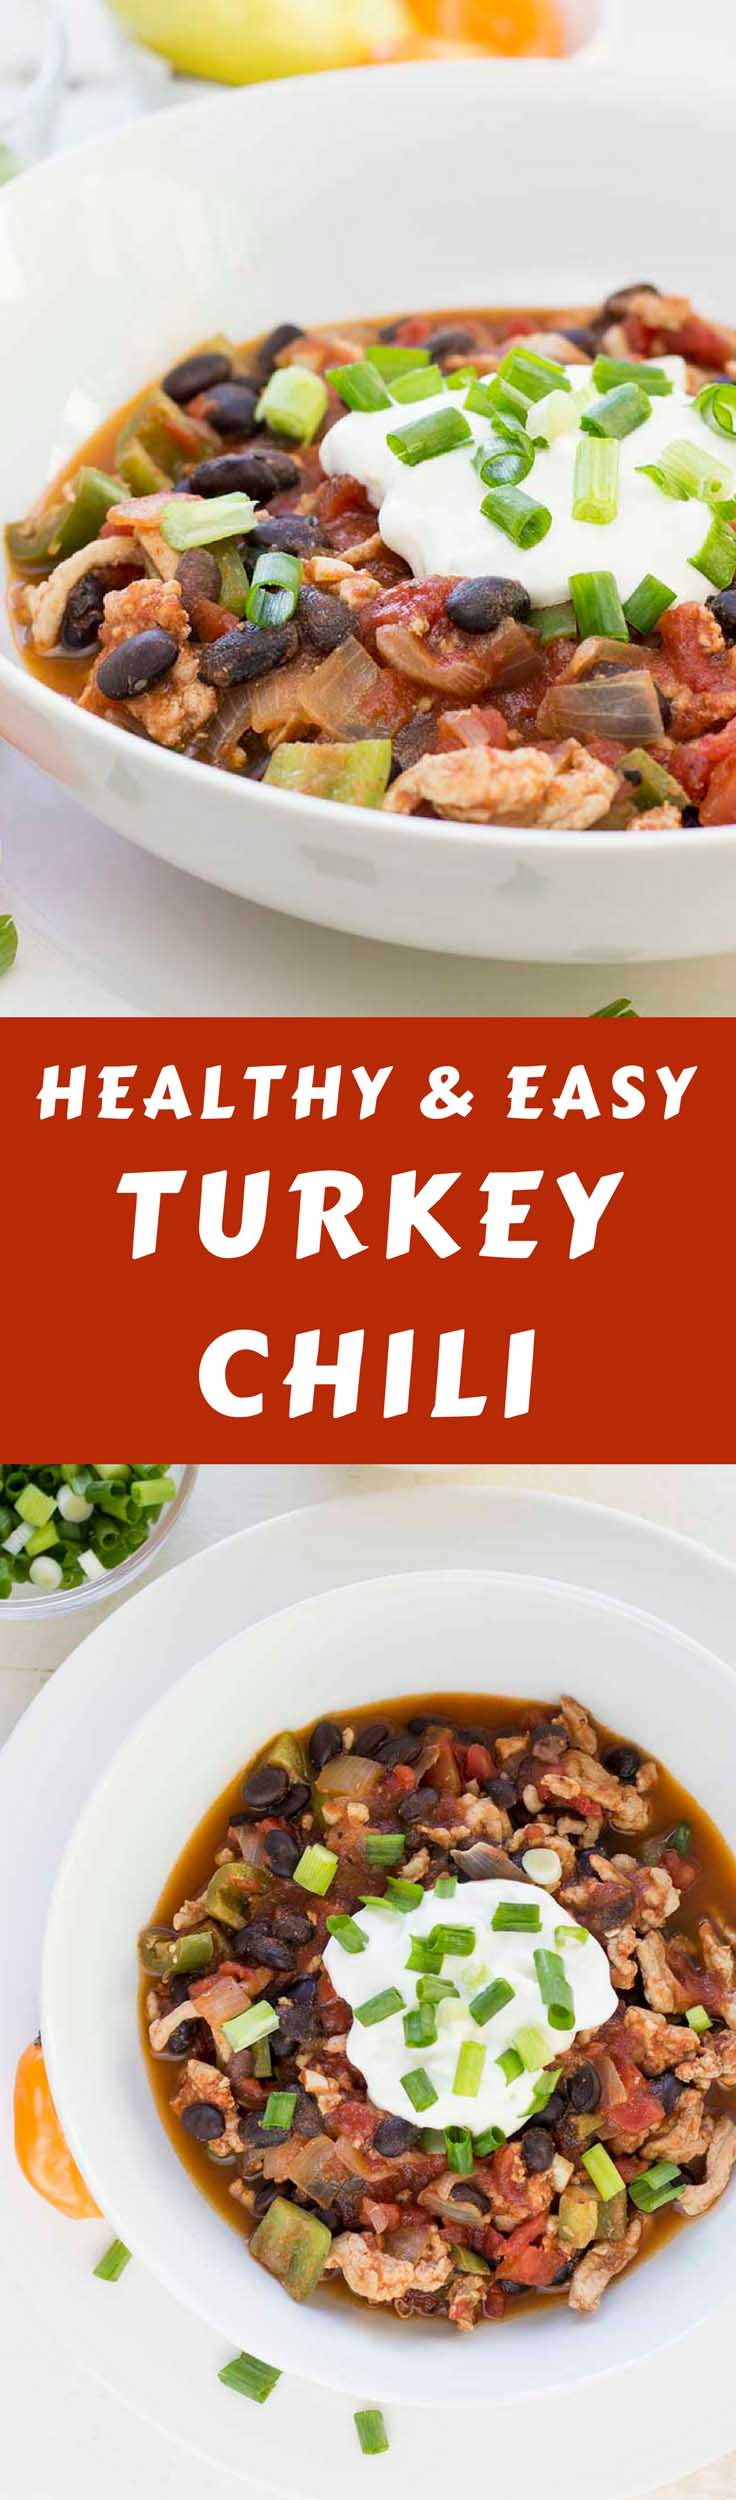 This Simple Turkey Chili recipe should be your dinner tonight! It's high in protein and relatively low in carbs and fat, making it the perfect healthy turkey chili recipe. #turkeychilirecipe